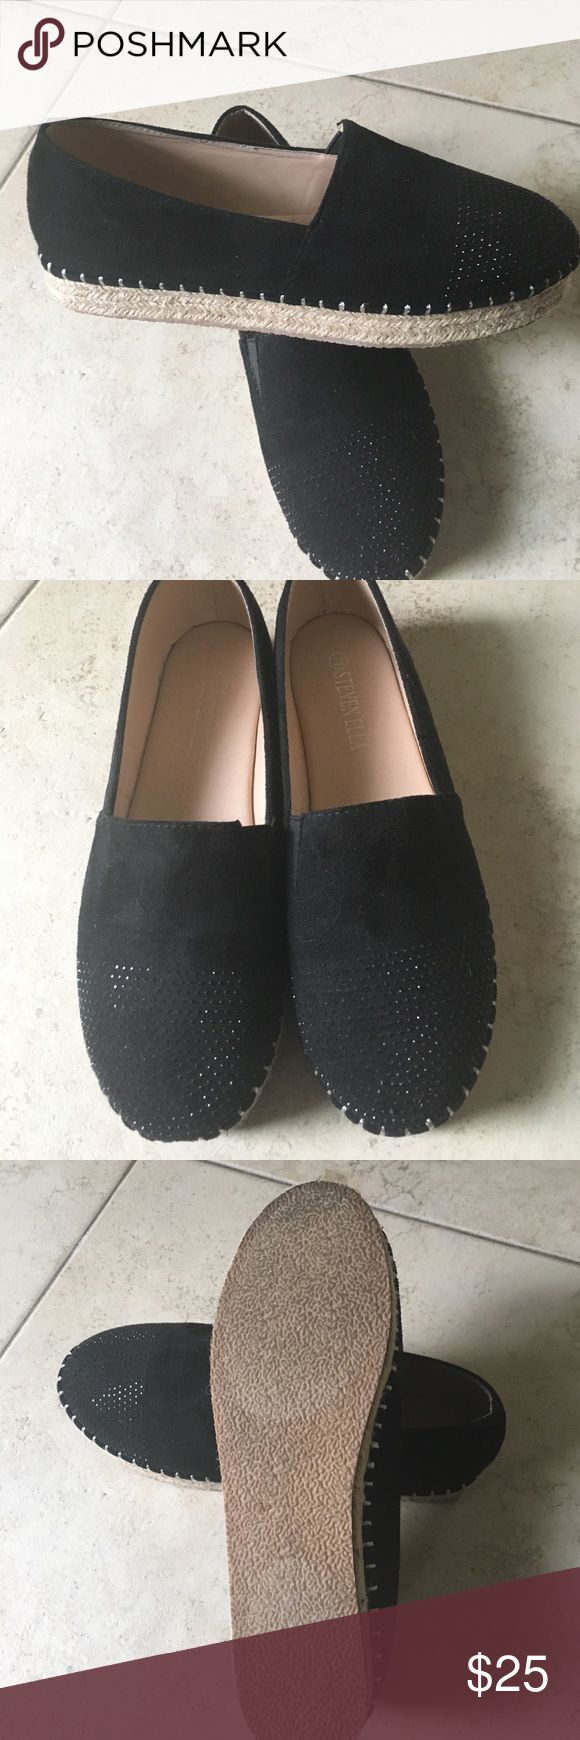 Shoes Great condition!! Worn once!  A little bling..really sharp! steven ella Shoes Flats & Loafers